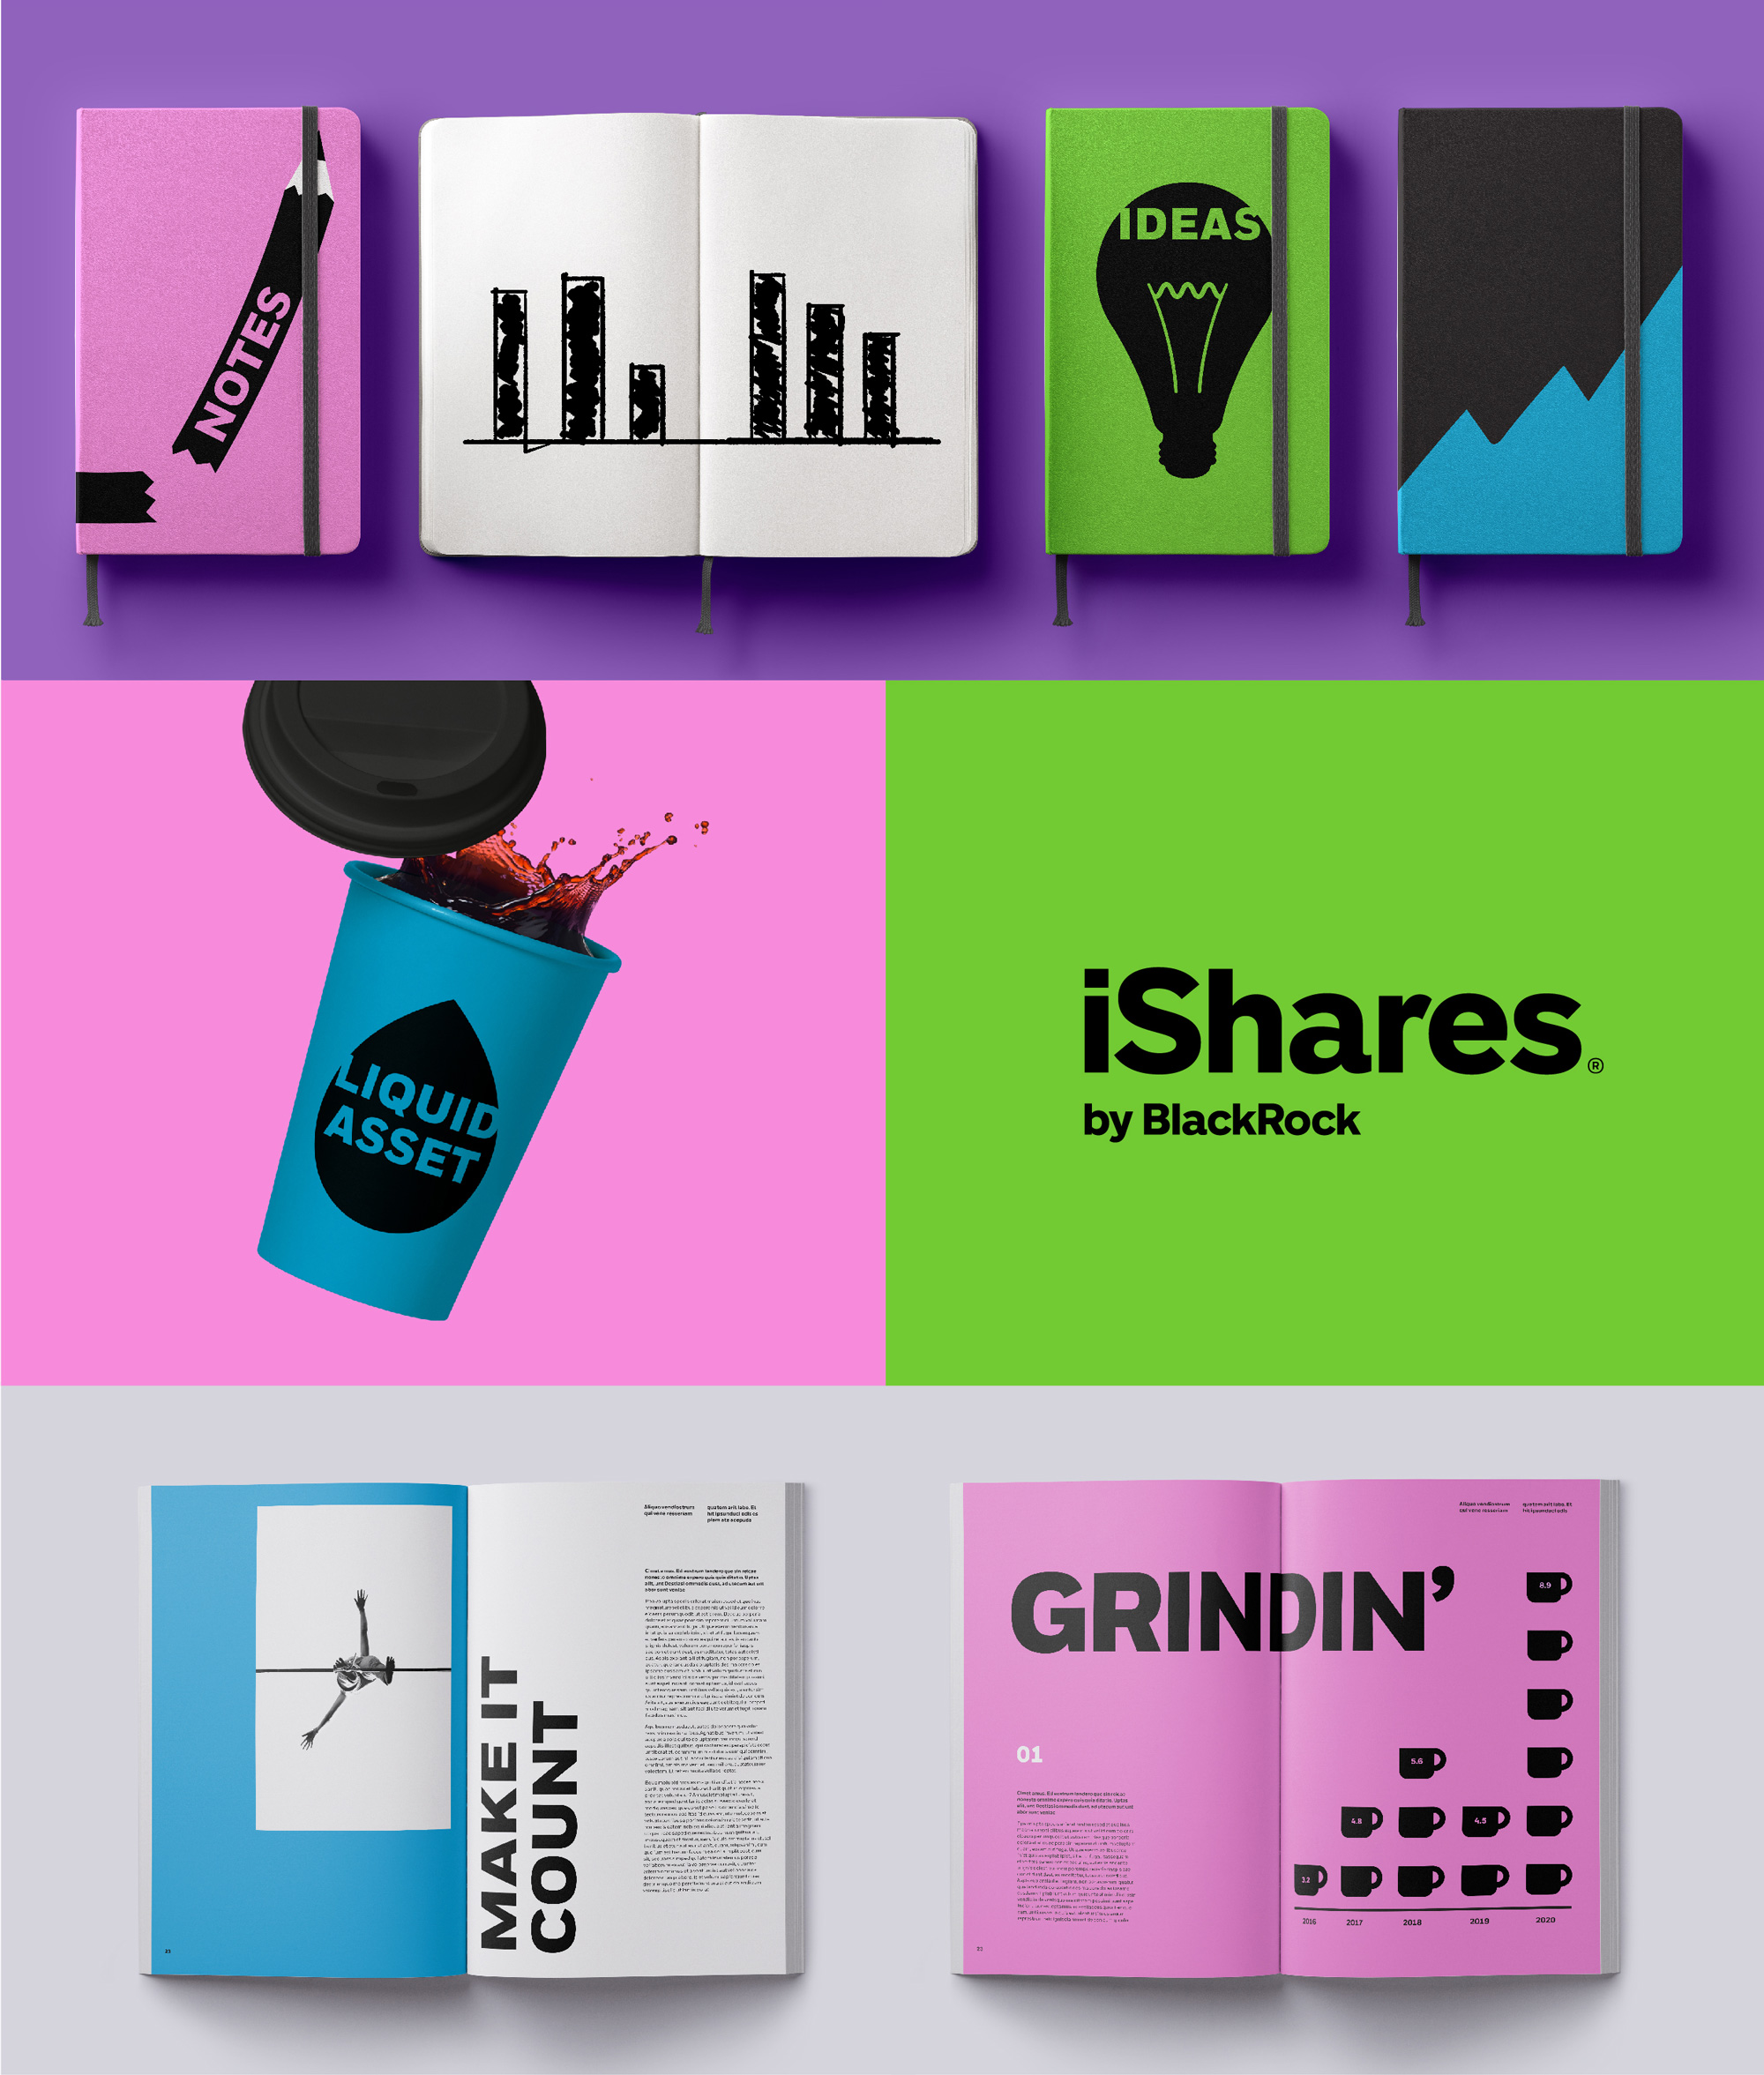 New Logo and Identity for iShares by Turner Duckworth